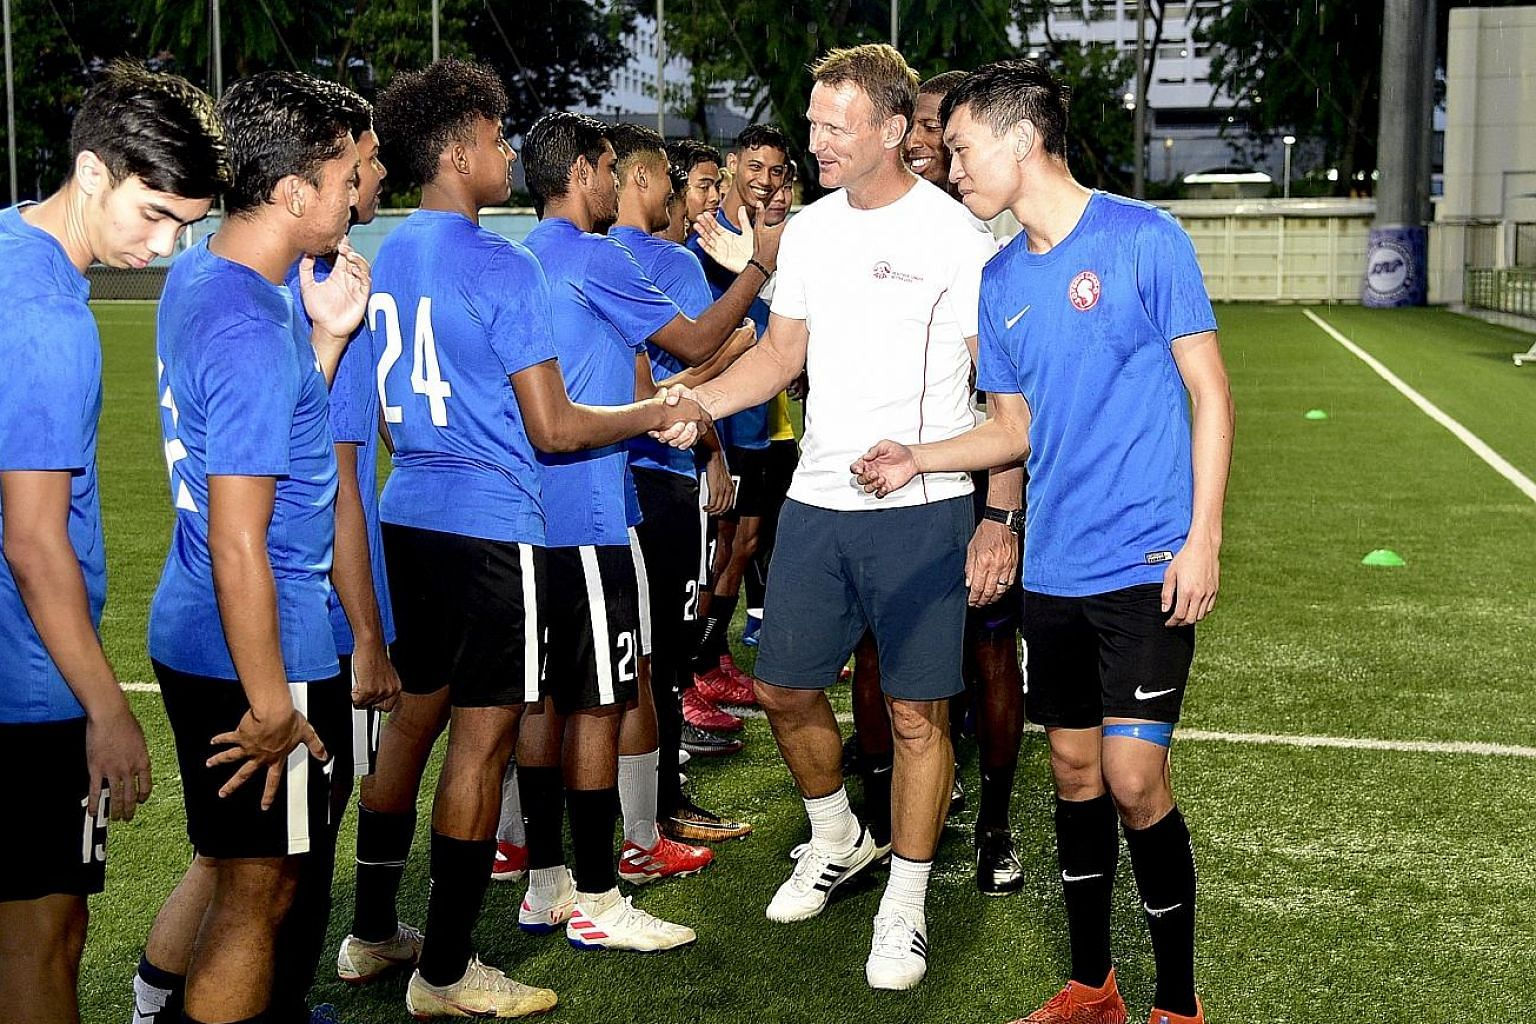 Former Tottenham and Manchester United striker Teddy Sheringham being introduced to the Young Lions by their captain Joshua Pereira at Jalan Besar Stadium on Thursday.